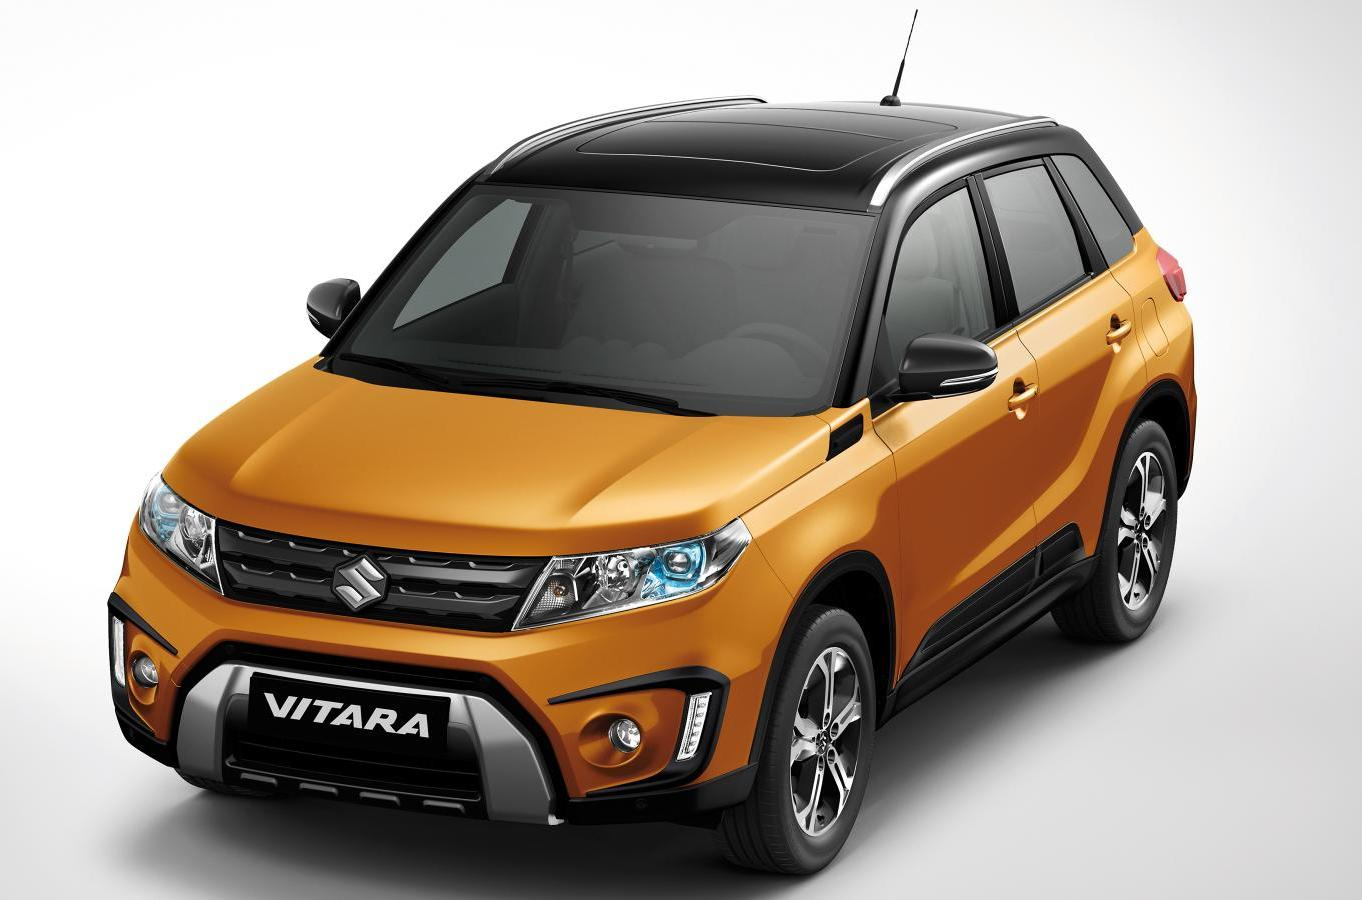 suzuki vitara compact suv pictures details. Black Bedroom Furniture Sets. Home Design Ideas